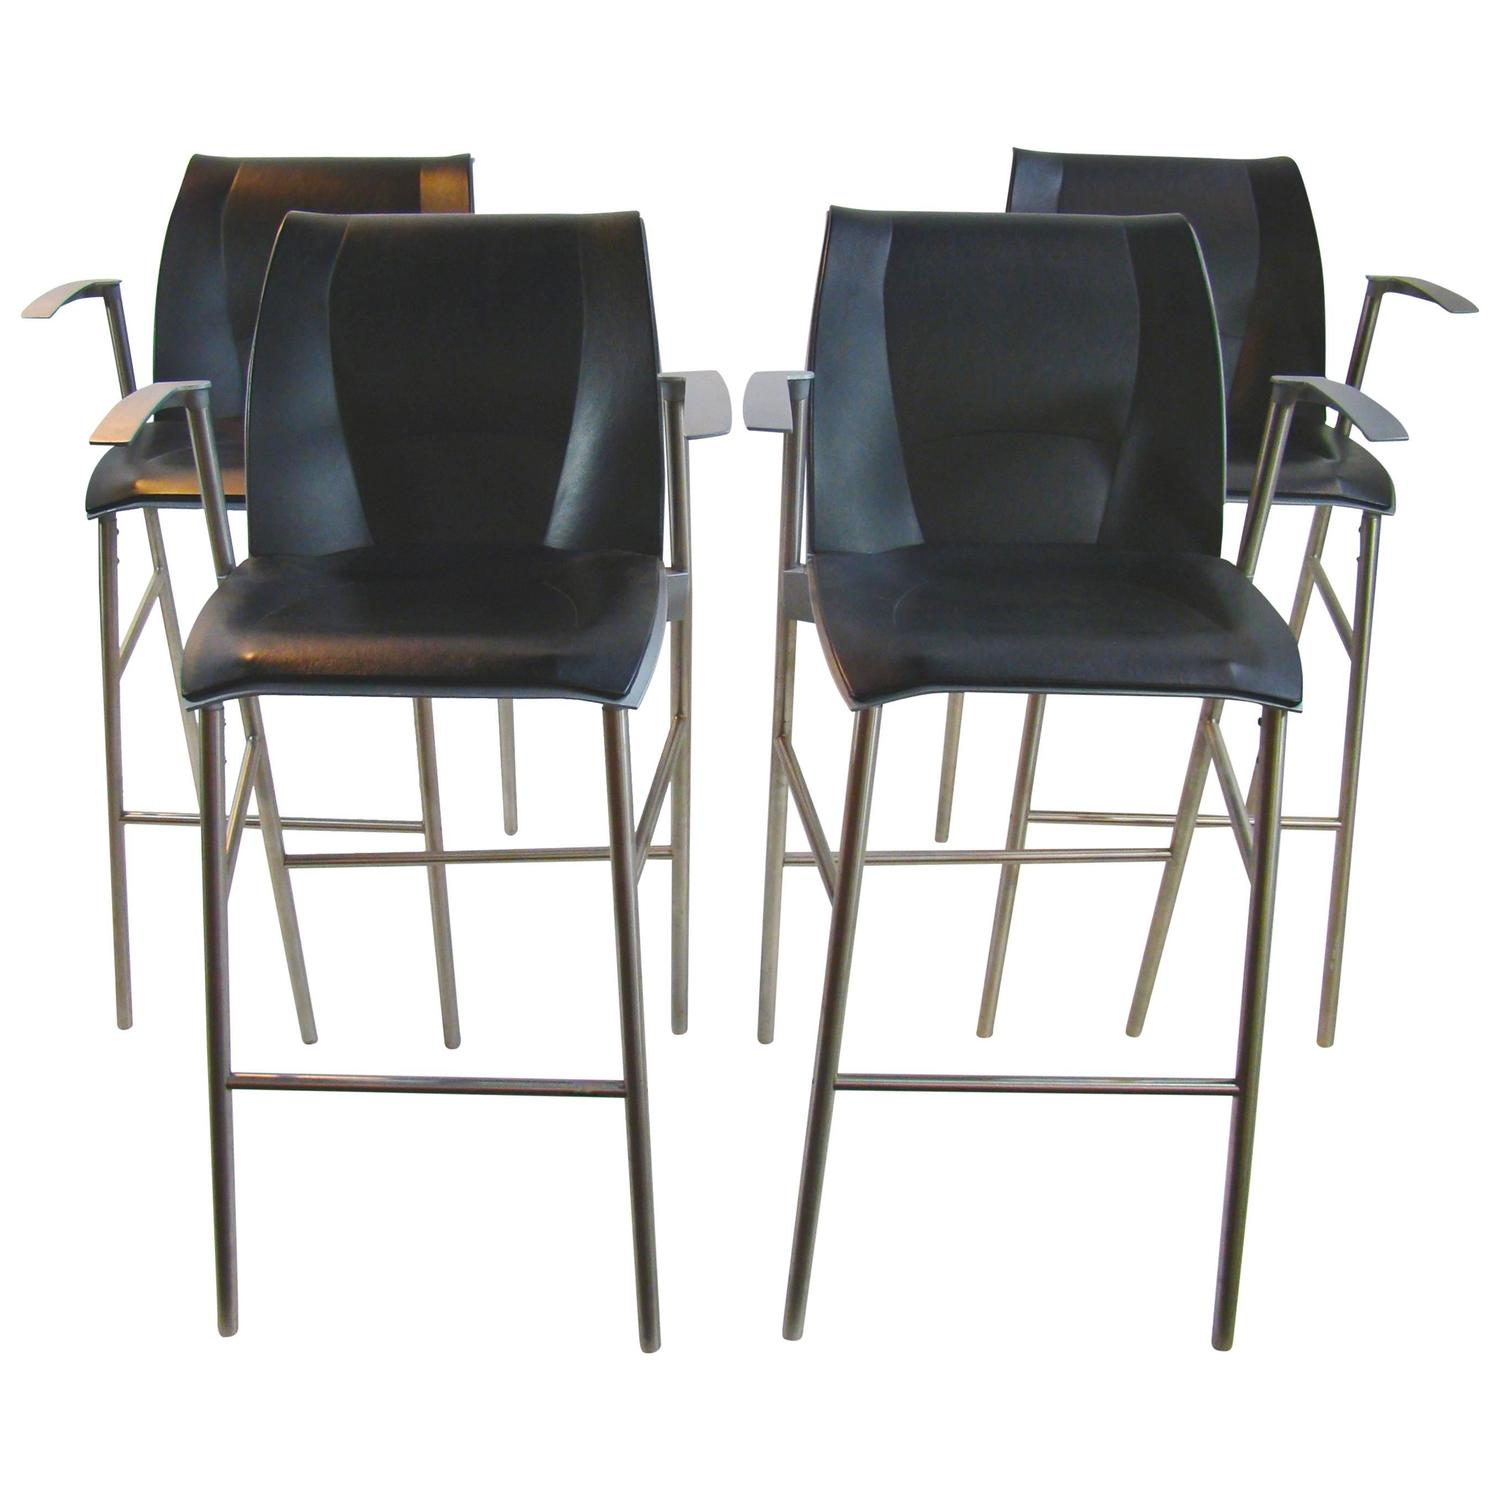 Frank Gehry For Knoll Studio Limited Edition Fog Bar Stools For Sale At 1stdibs